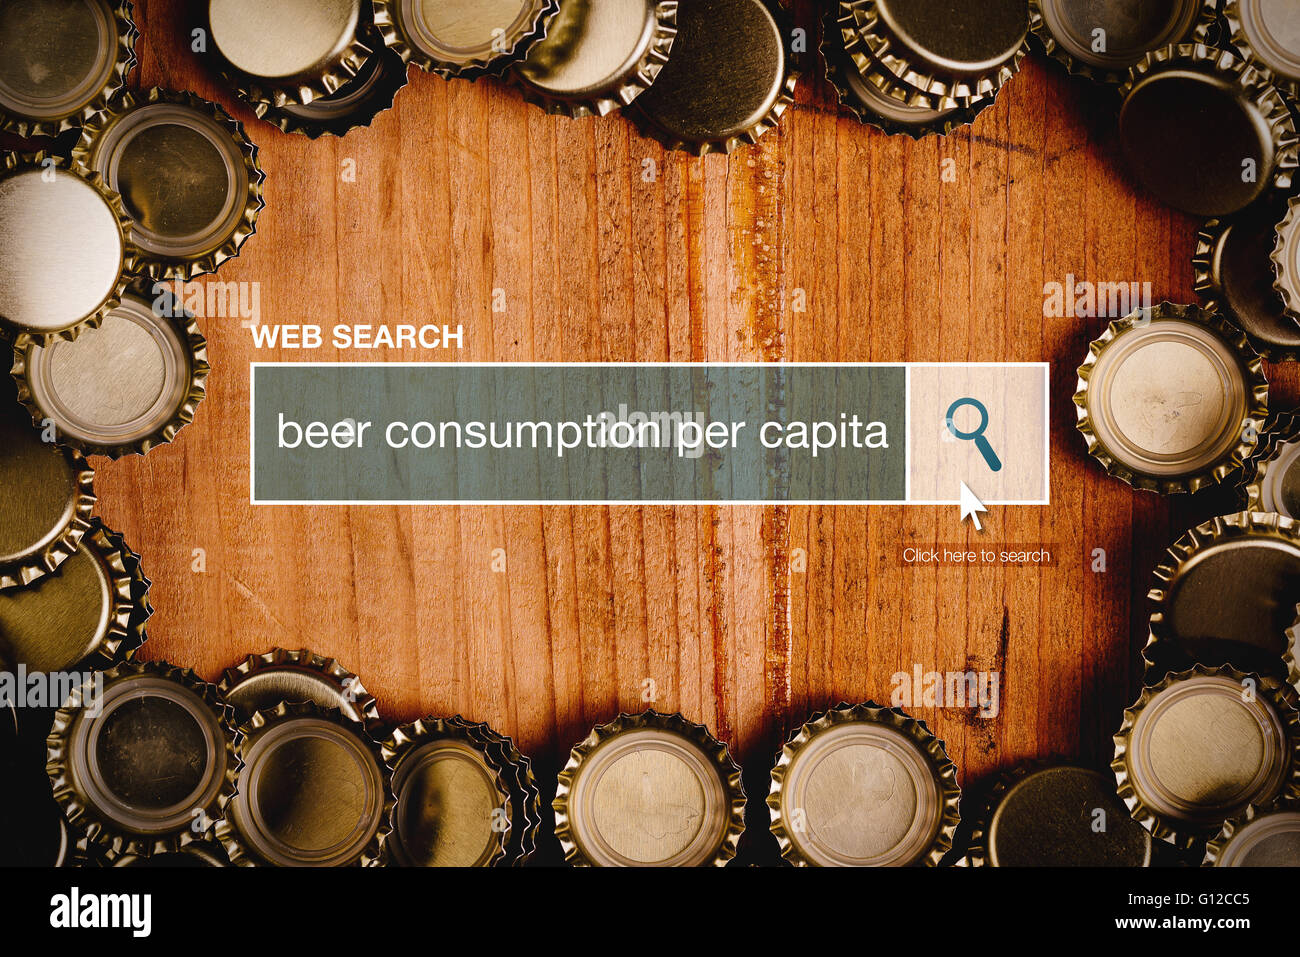 Beer consumption per capita definition in internet glossary - web search bar glossary term - Stock Image